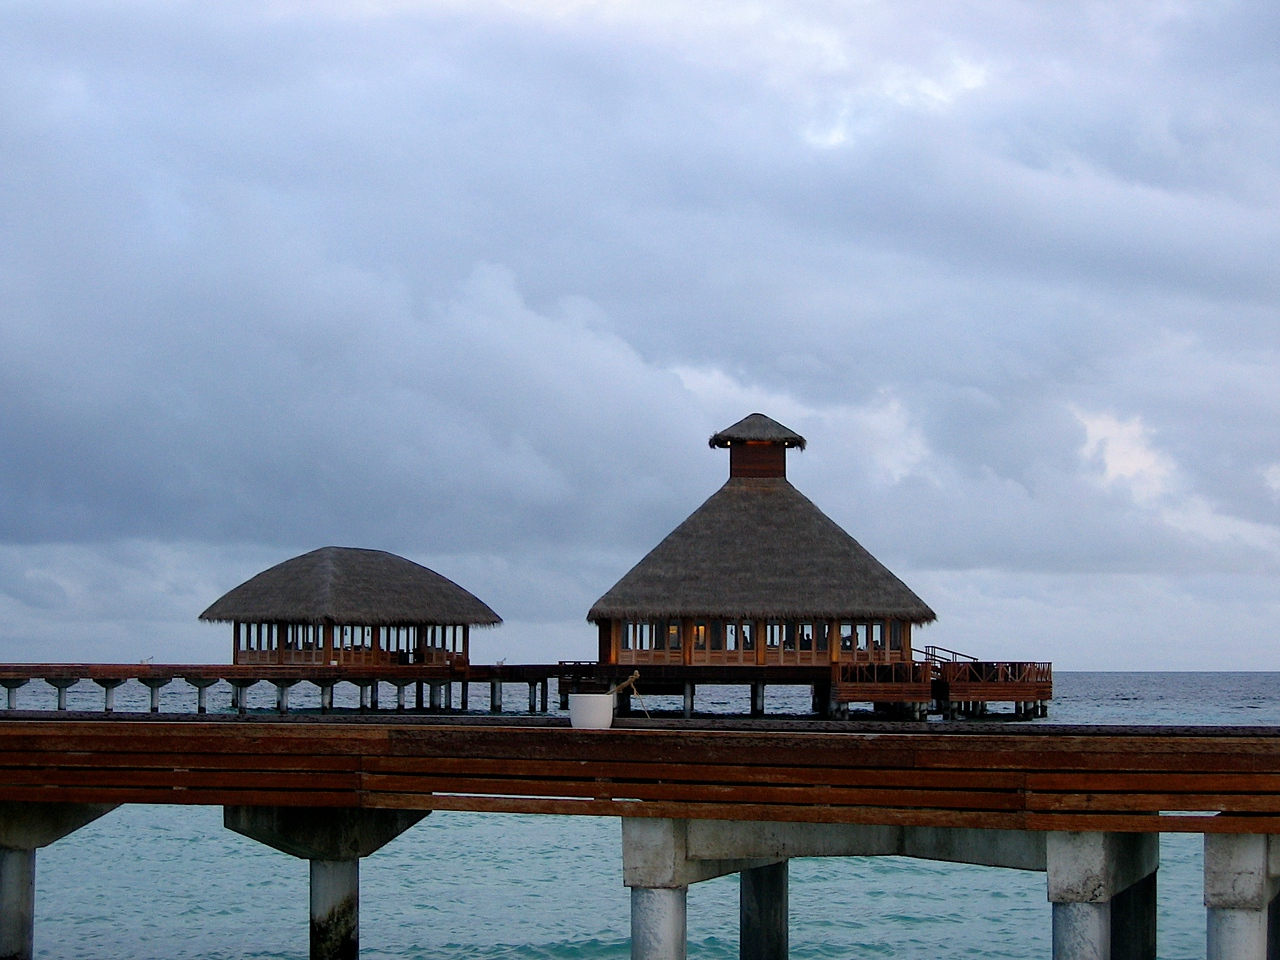 The spa also has it's own restaurant at the other end of the jetty.